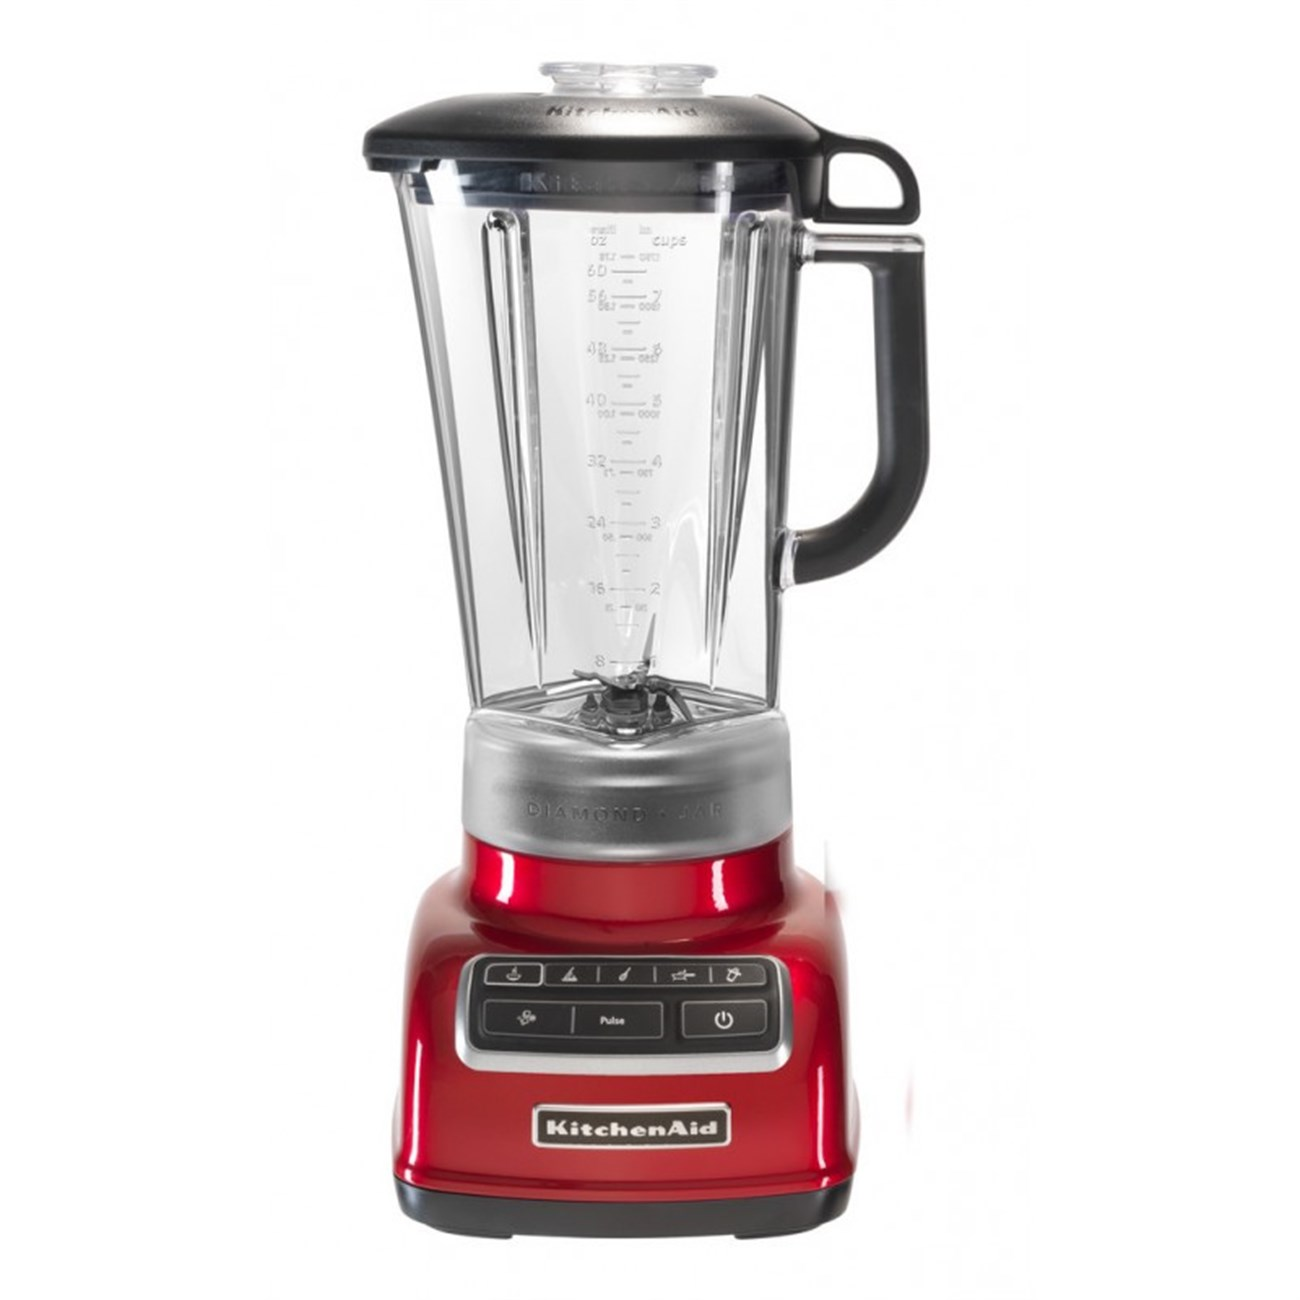 Kitchenaid Diamond Blender Candy Apple - 5KSB1585